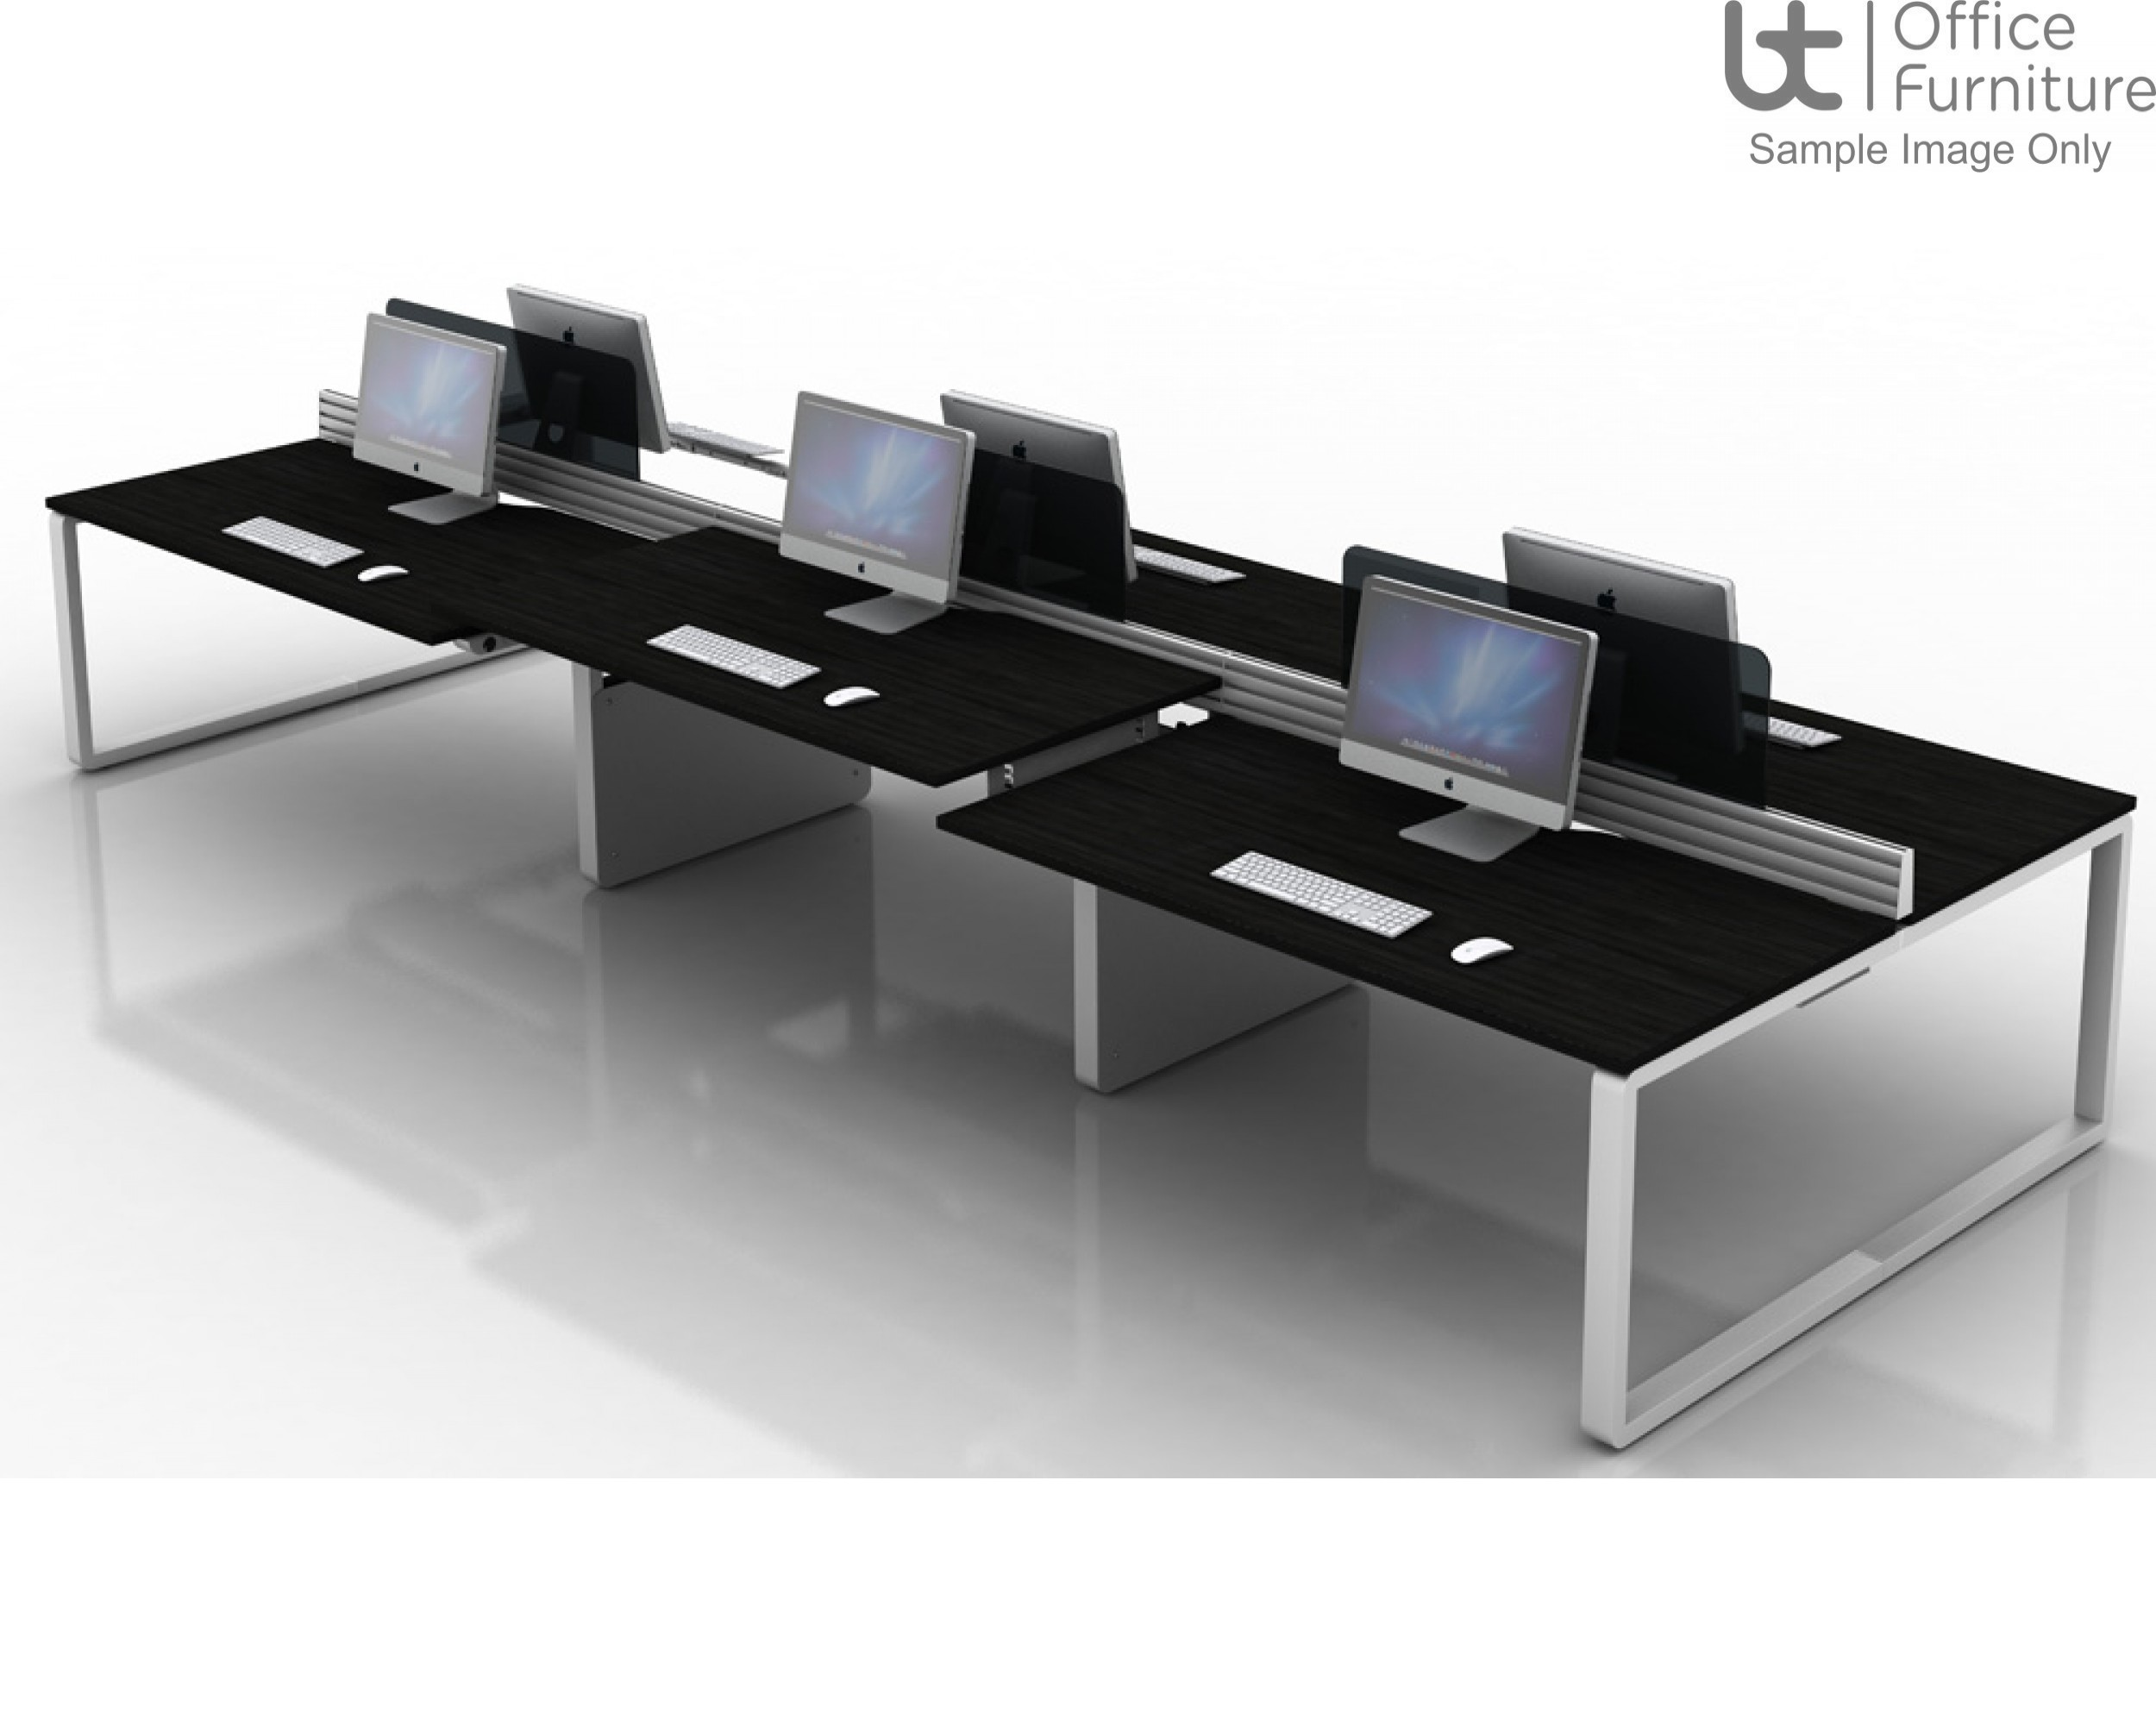 Arc Extended Crescent Desk 800D x 600Dmm - Right Hand Illustrated